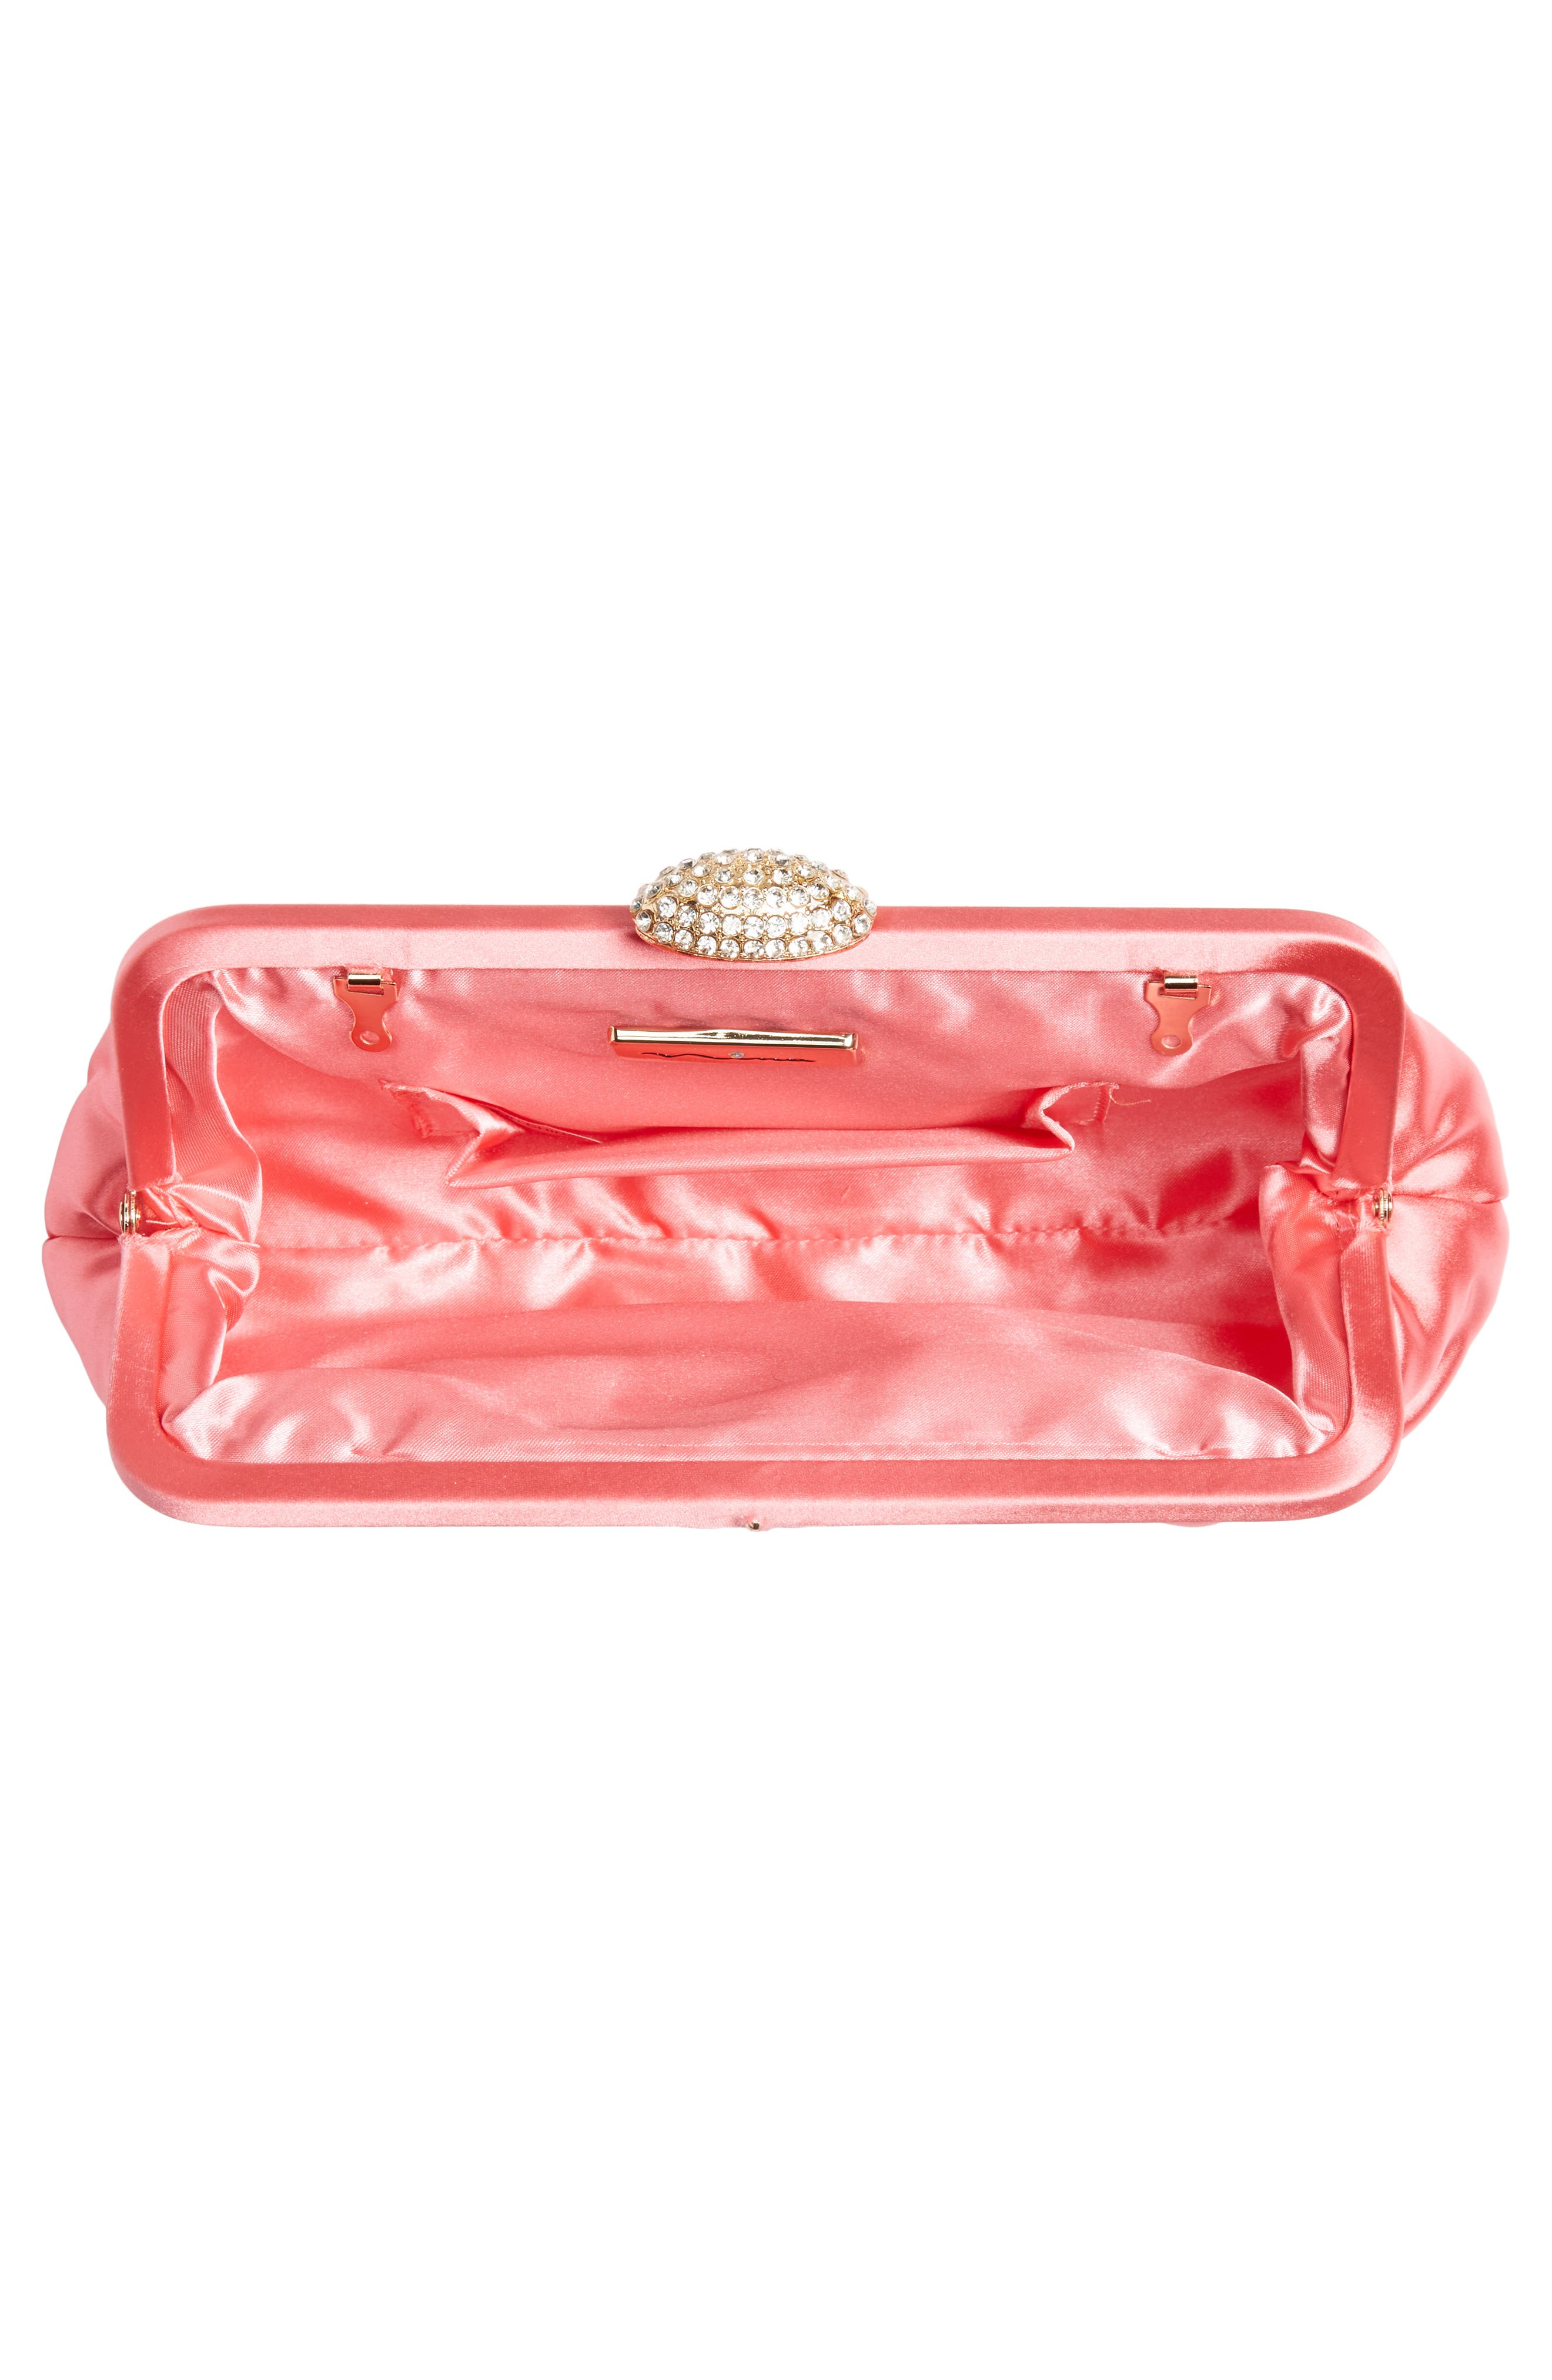 NINA, Concord Pleated Satin Frame Clutch, Alternate thumbnail 4, color, STRAWBERRY PUNCH